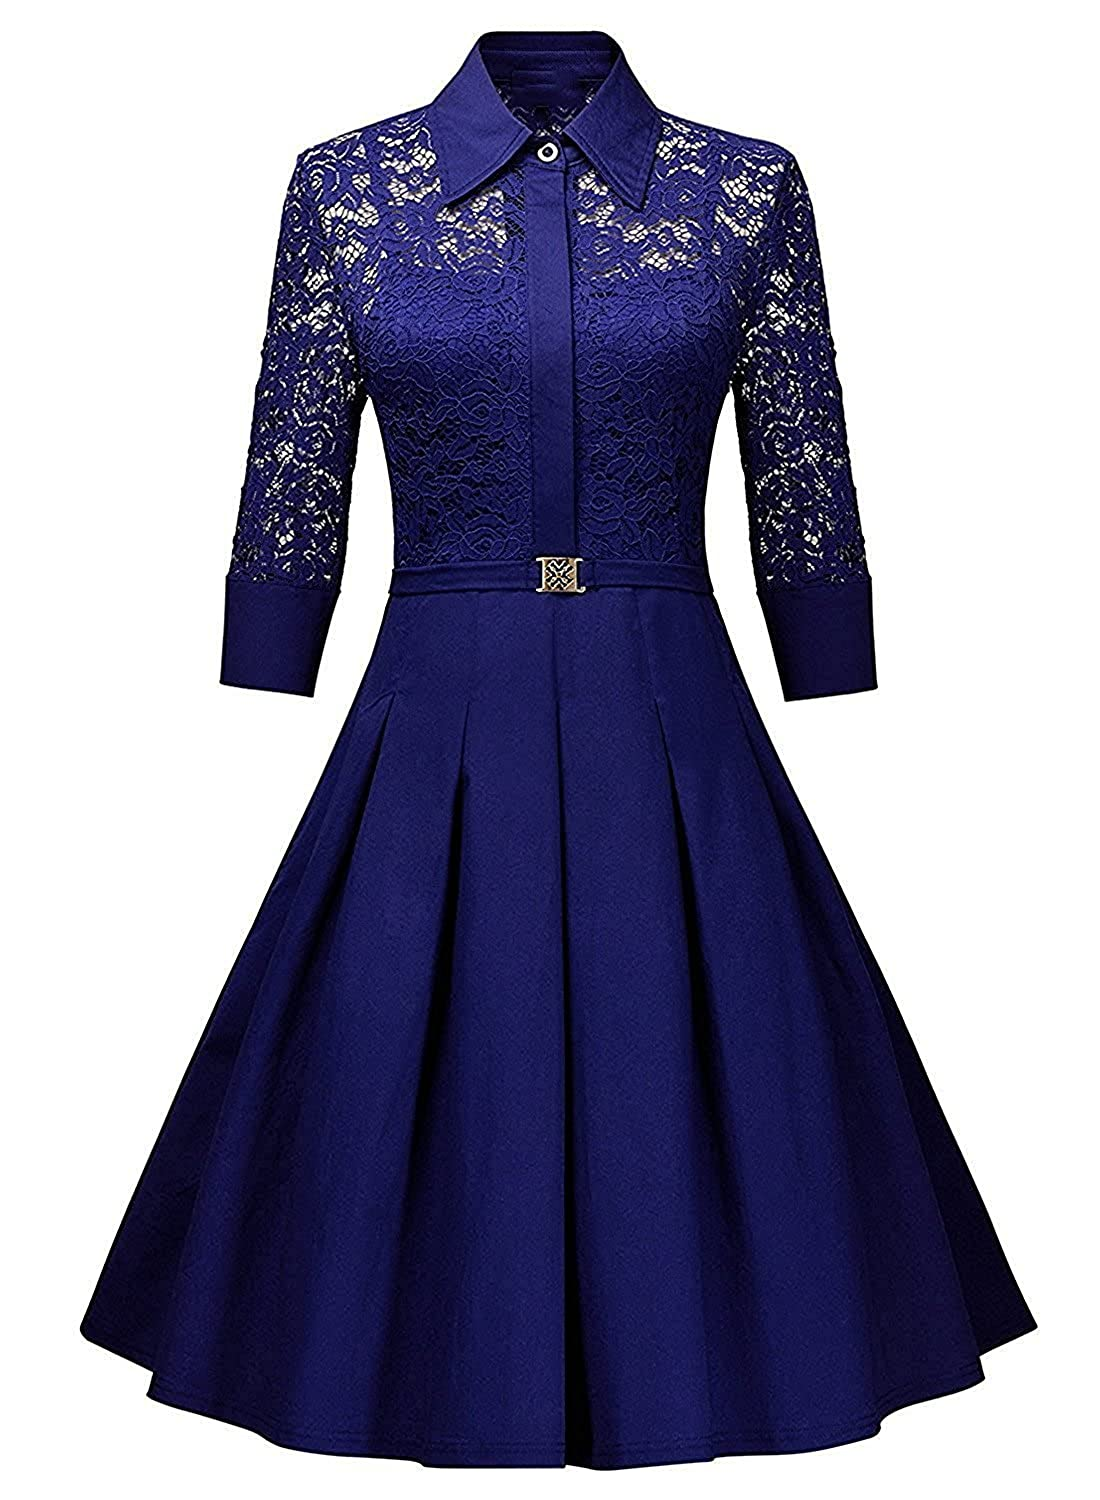 4e721e64ff680 Famous Fab Women's Crepe Lace Flare A-Line Dress (Royal Blue, Free Size):  Amazon.in: Clothing & Accessories